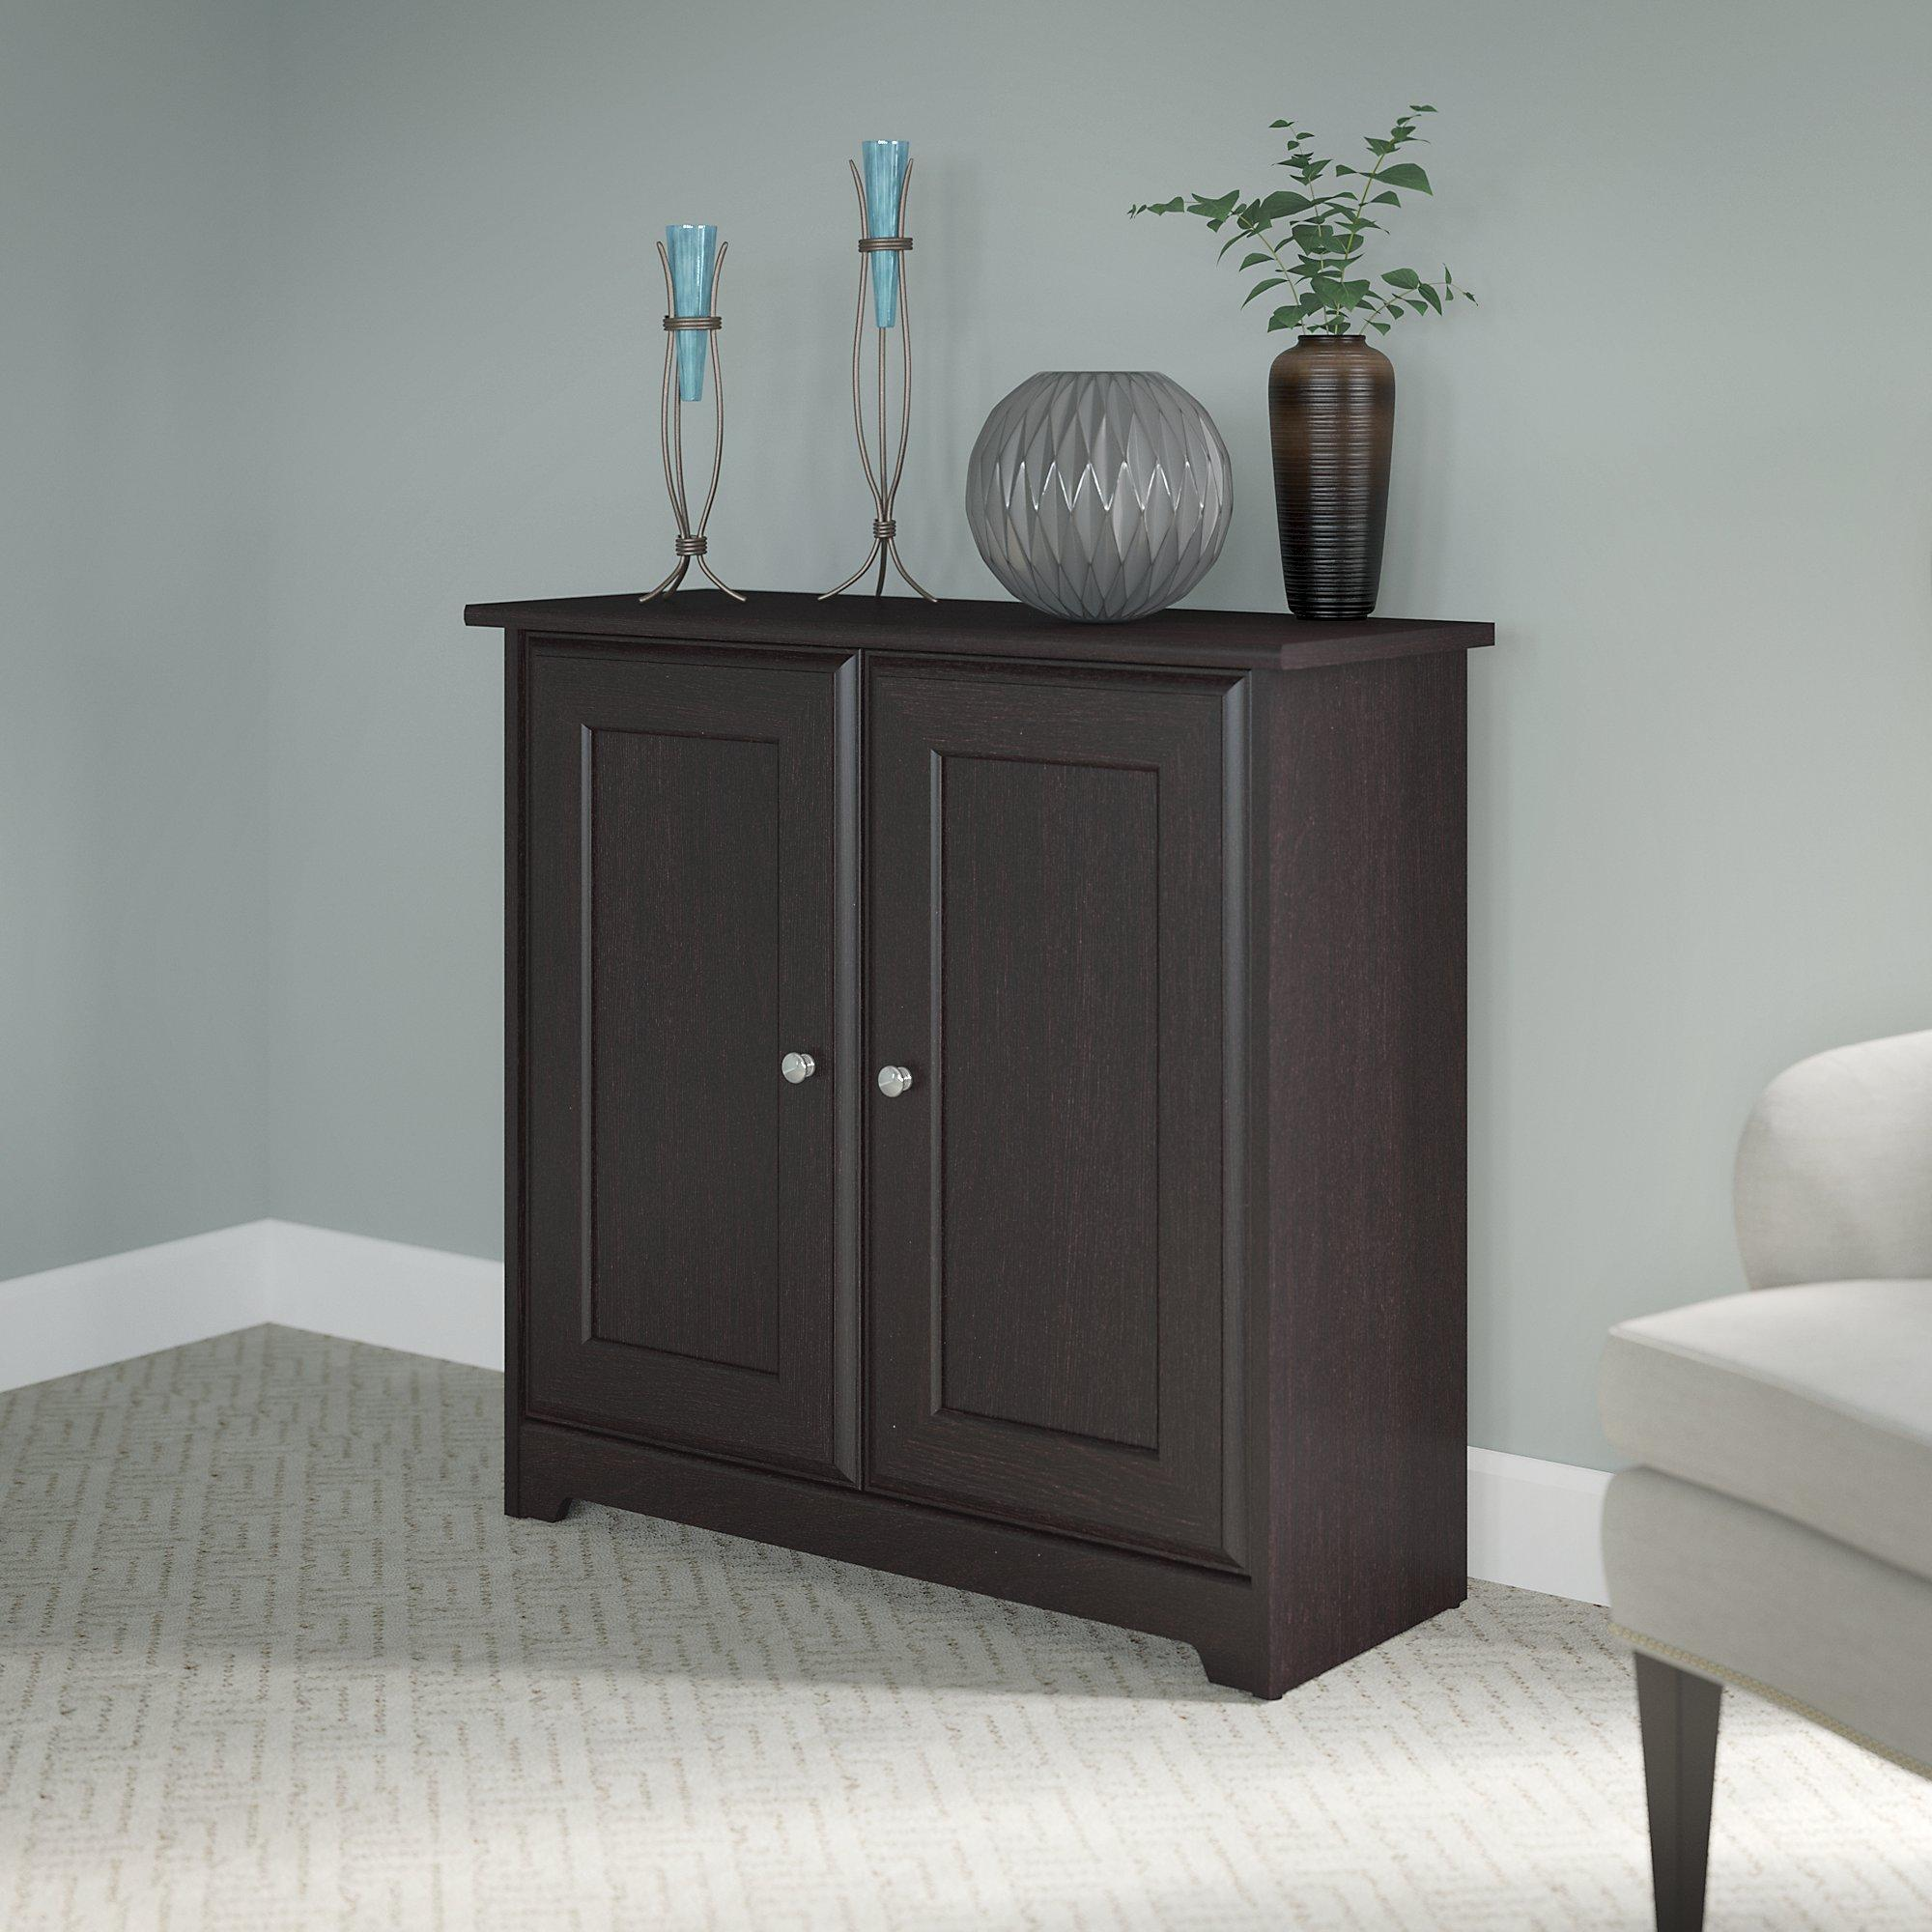 cabot small storage cabinet with doors in espresso oak kitchen dining. Black Bedroom Furniture Sets. Home Design Ideas